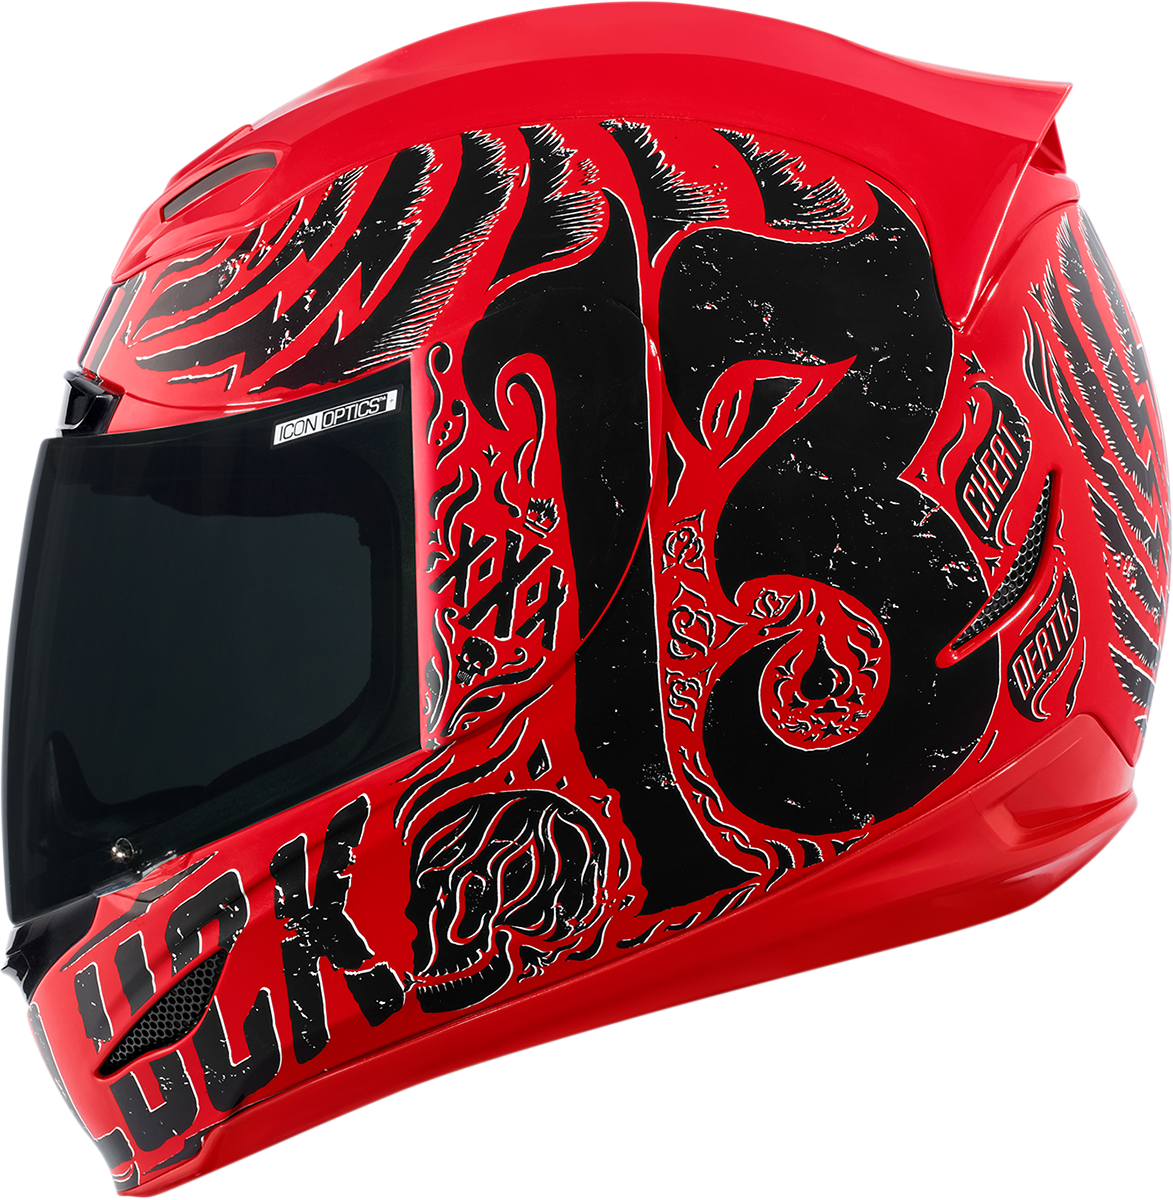 Airmada Hard Luck Red Gloss Products Ride Icon 265 00